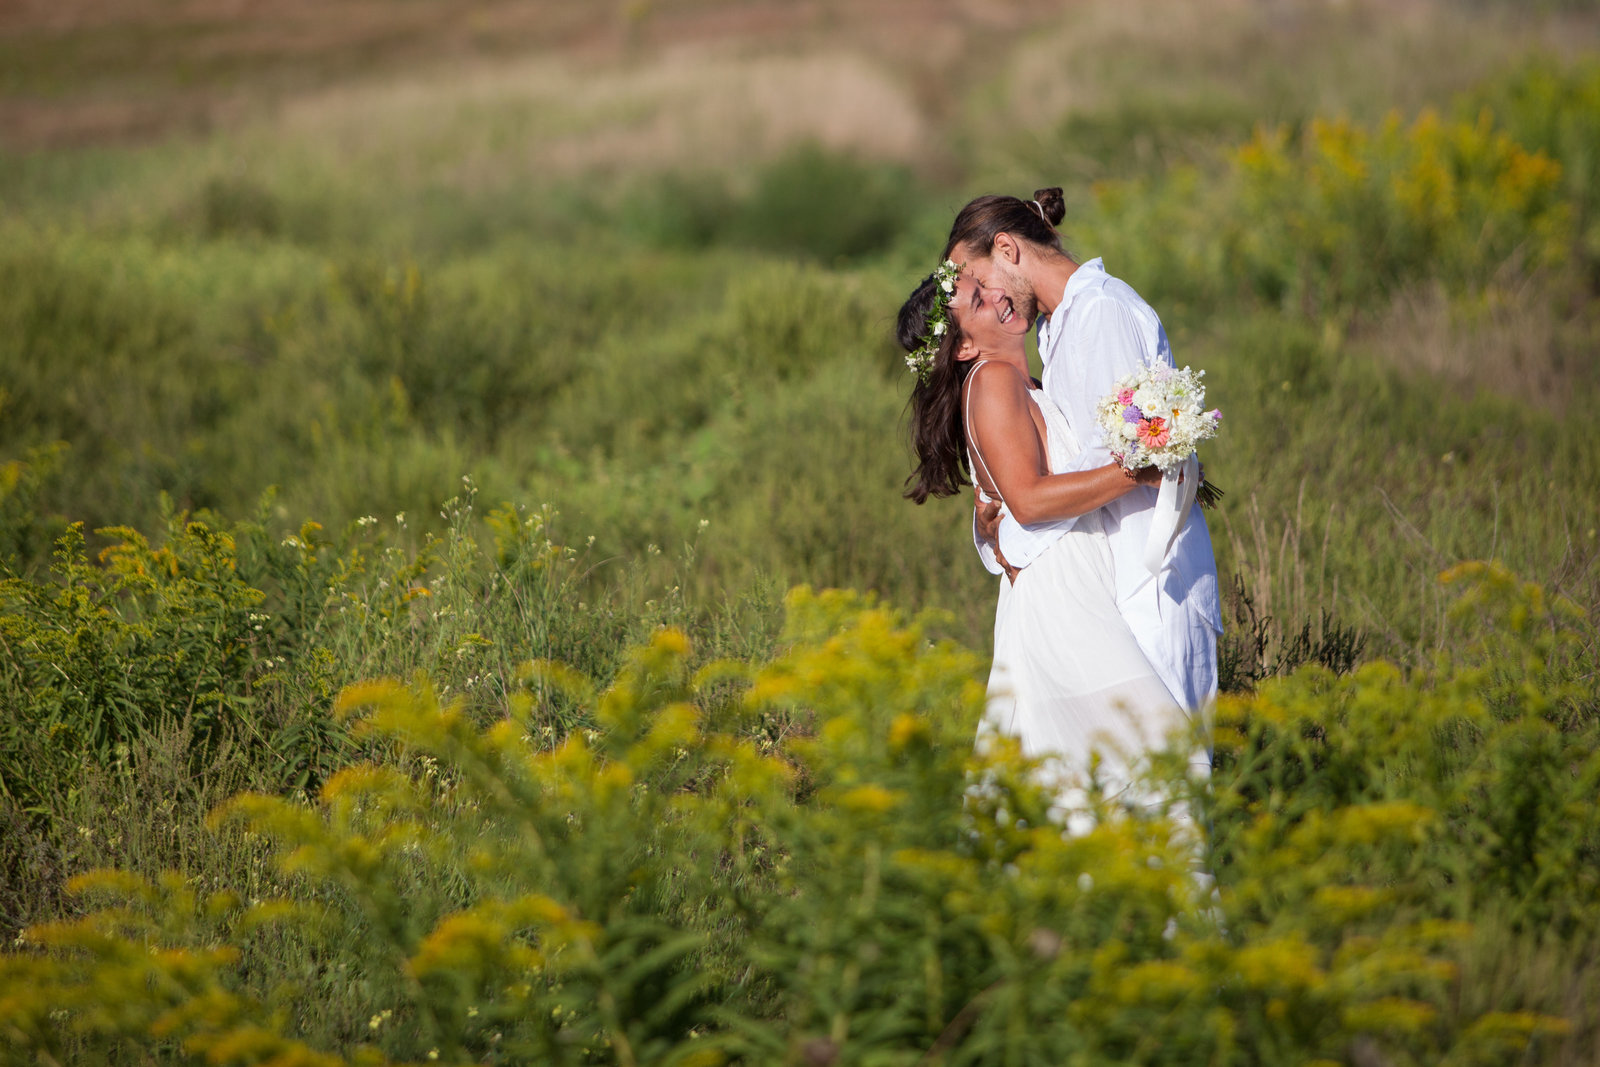 Bride and groom kissing in field of grass